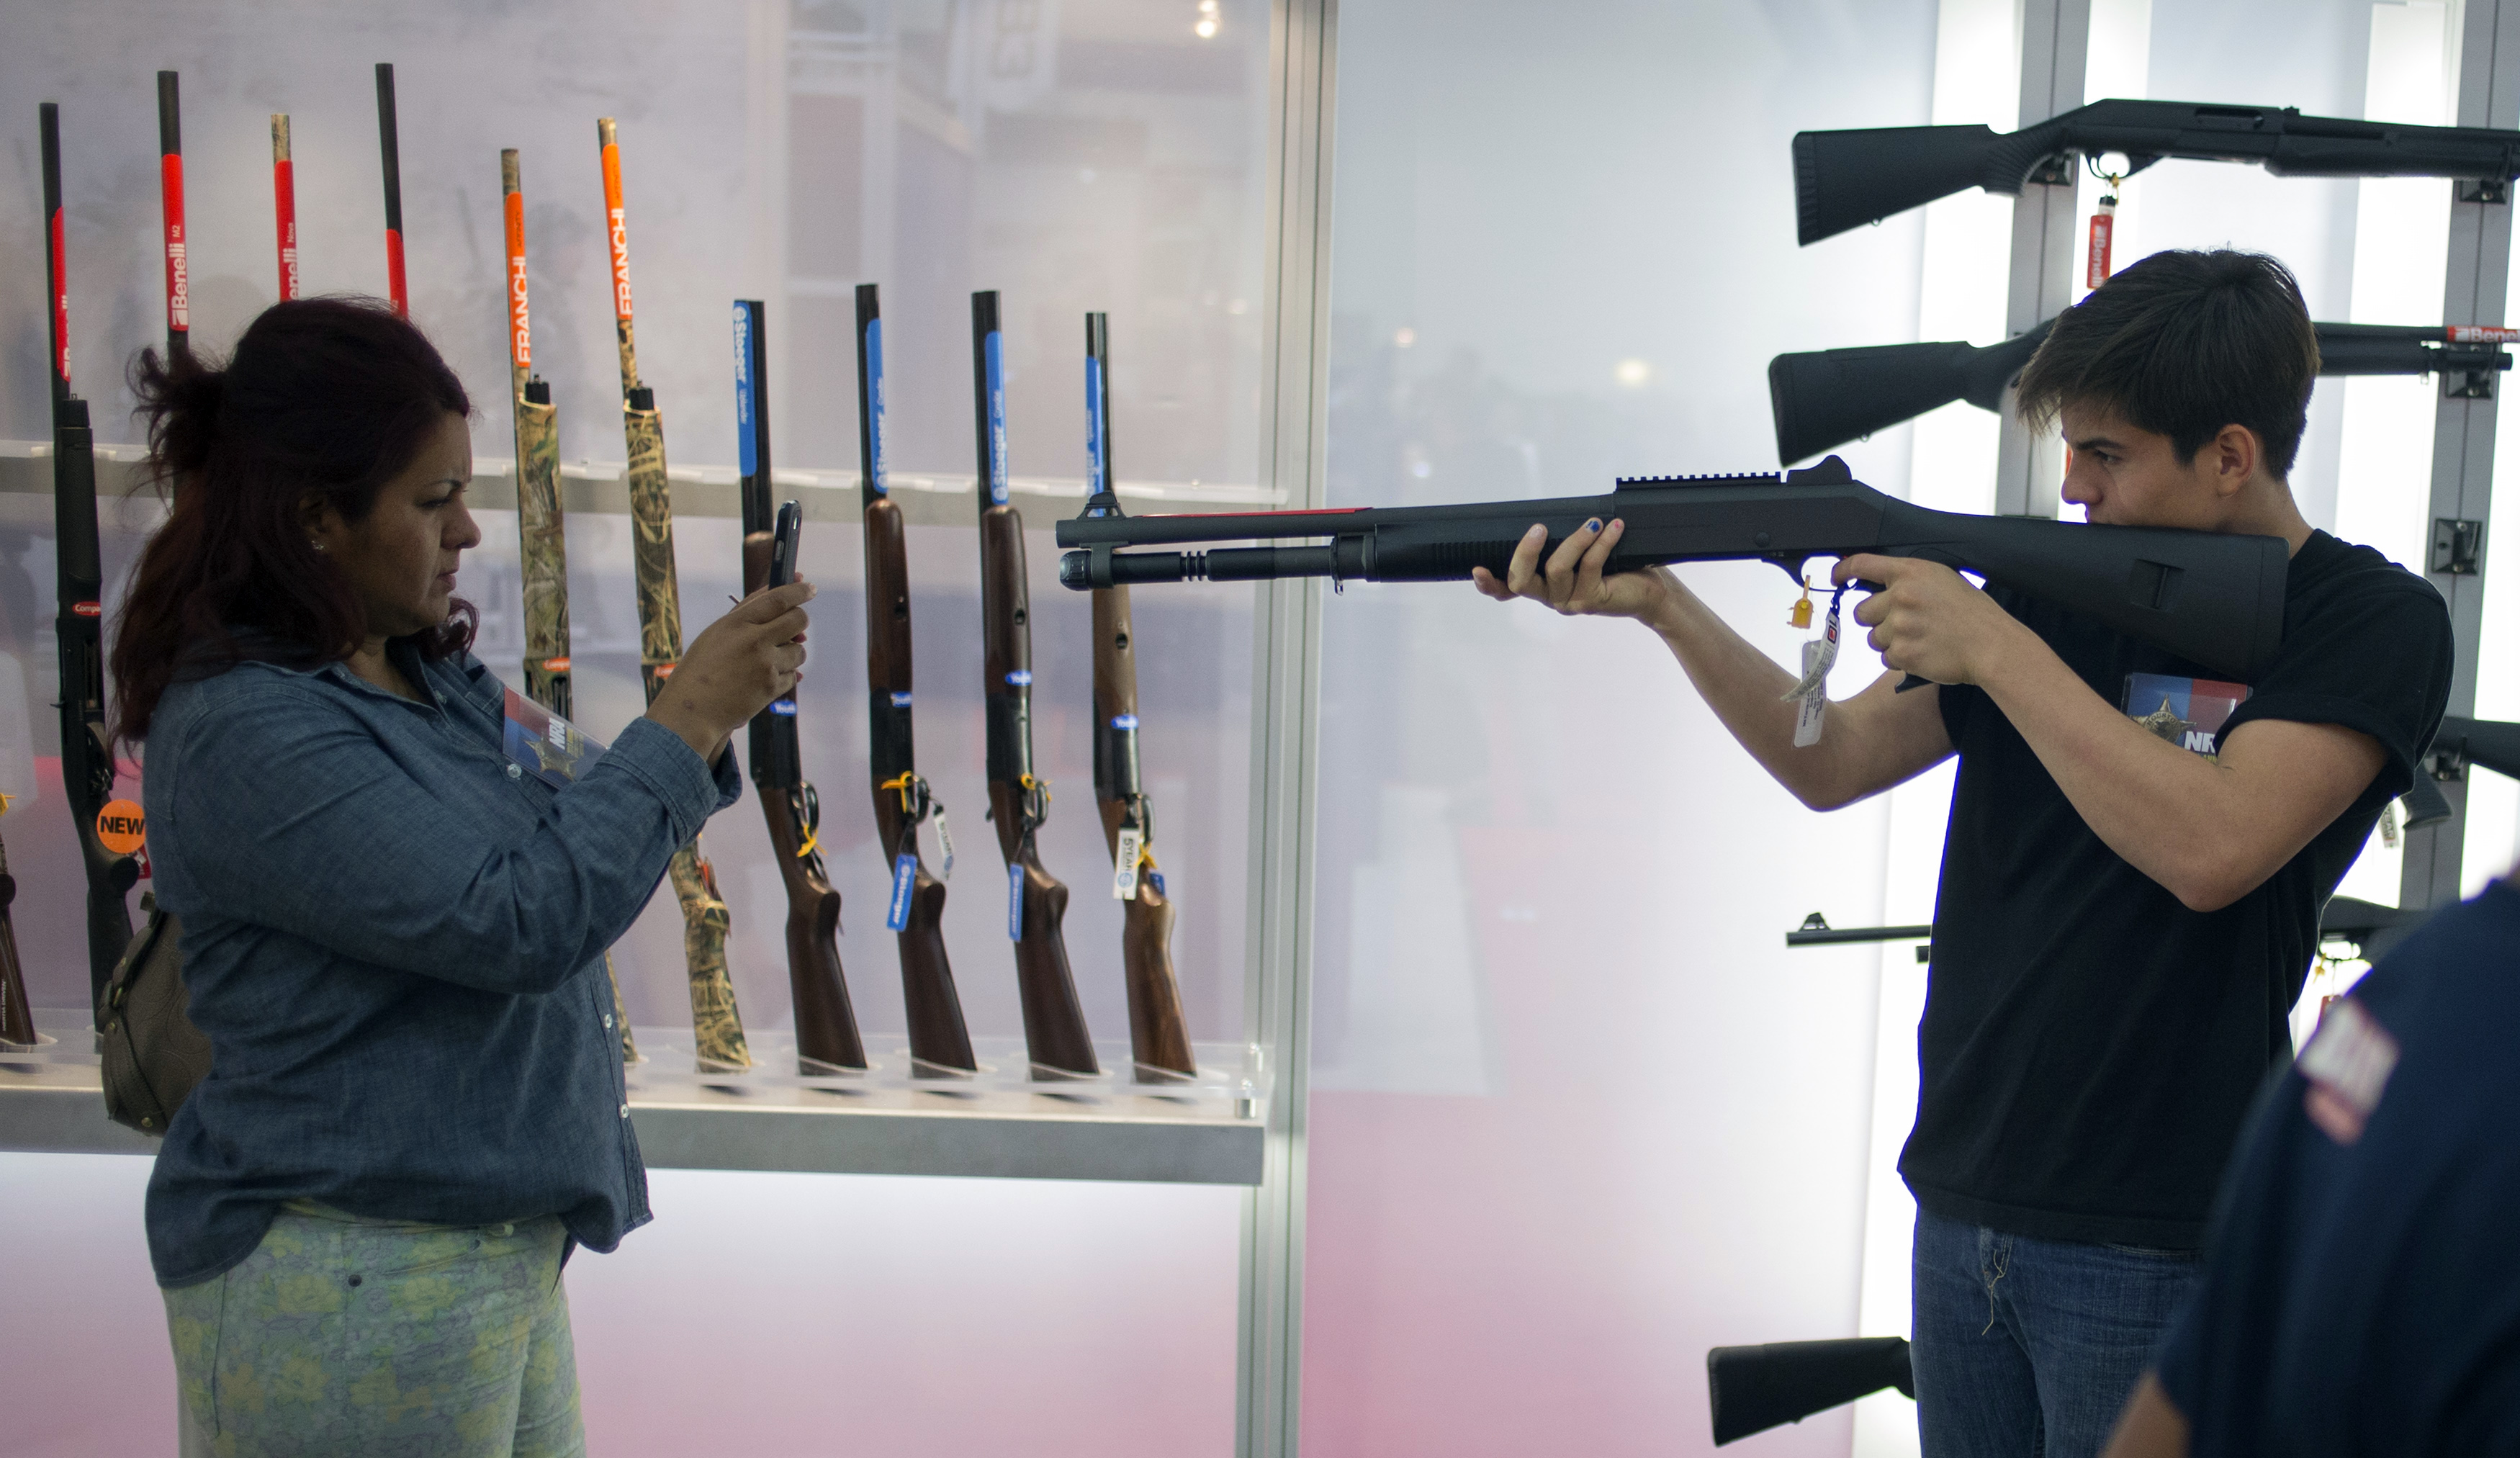 A woman uses a smart phone to photograph a young man holding a shotgun at an exhibit booth at the George R. Brown convention center, the site for the National Rifle Association's (NRA) annual meeting in Houston, Texas May 5, 2013.  REUTERS/Adrees Latif (UNITED STATES - Tags: POLITICS SOCIETY) - RTXZBWO